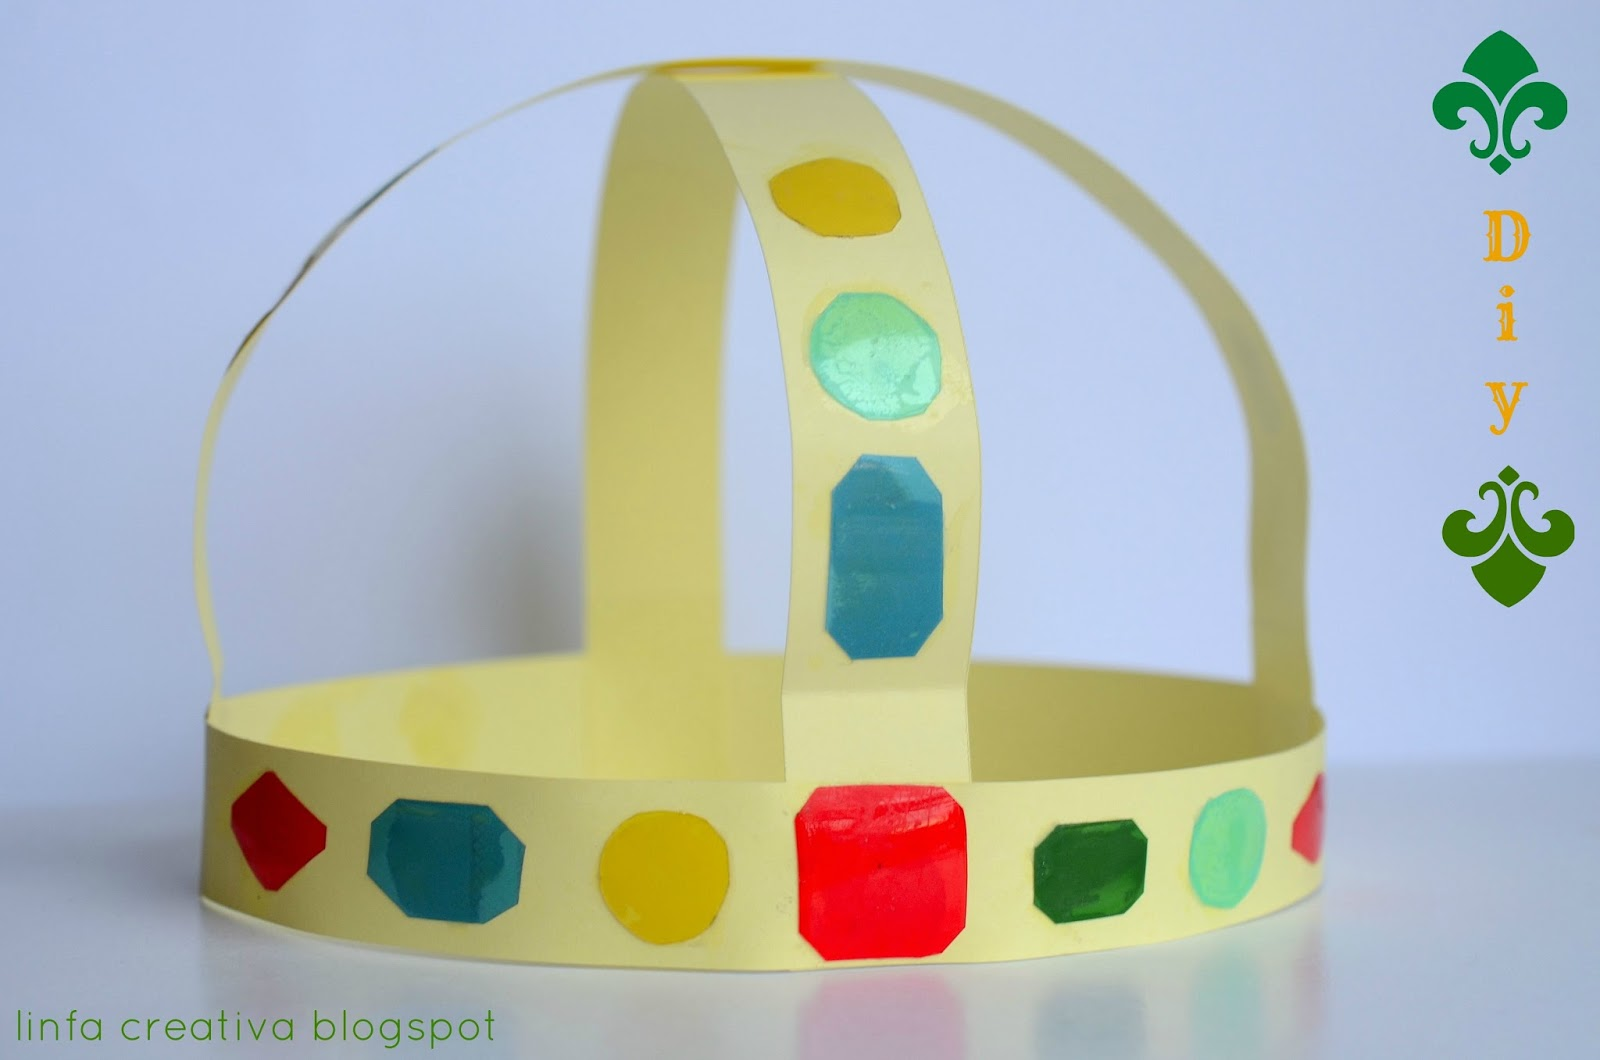 http://linfacreativa.blogspot.it/2014/01/diy-corona-fatta-con-carta-e-pet-crown.html